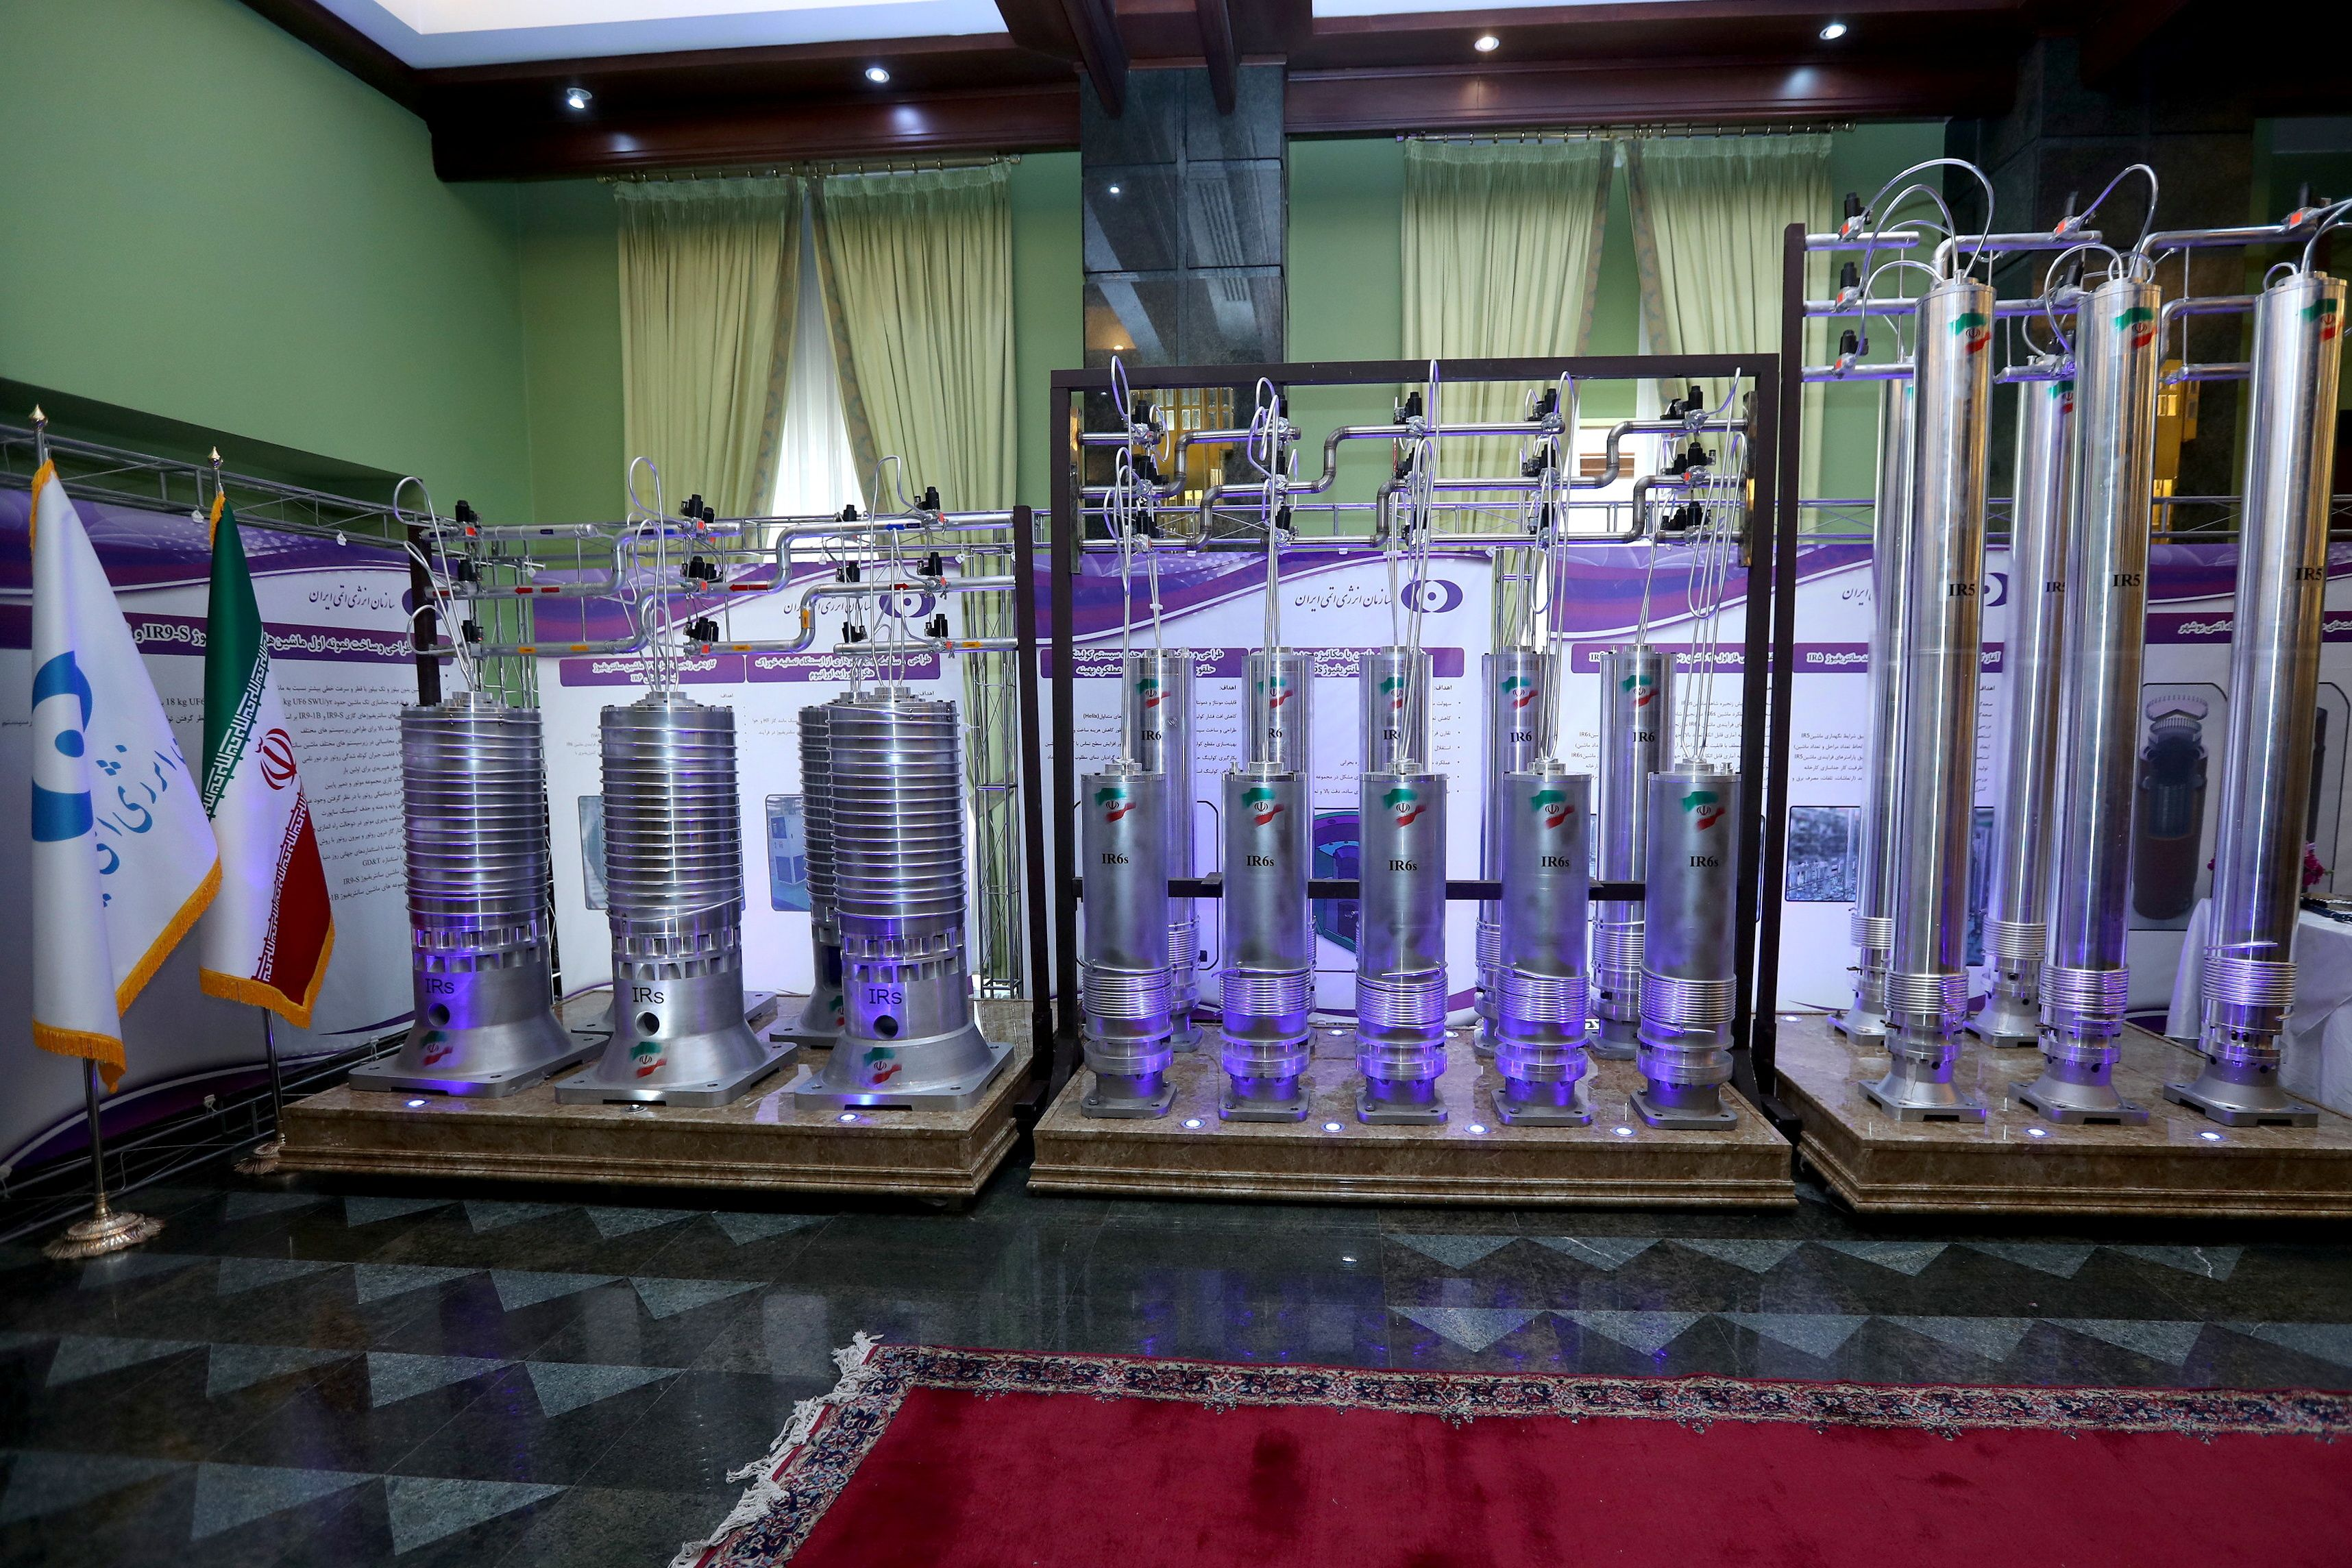 A number of new generation Iranian centrifuges are seen on display during Iran's National Nuclear Energy Day in Tehran, Iran April 10, 2021. Iranian Presidency Office/WANA (West Asia News Agency)/Handout via REUTERS